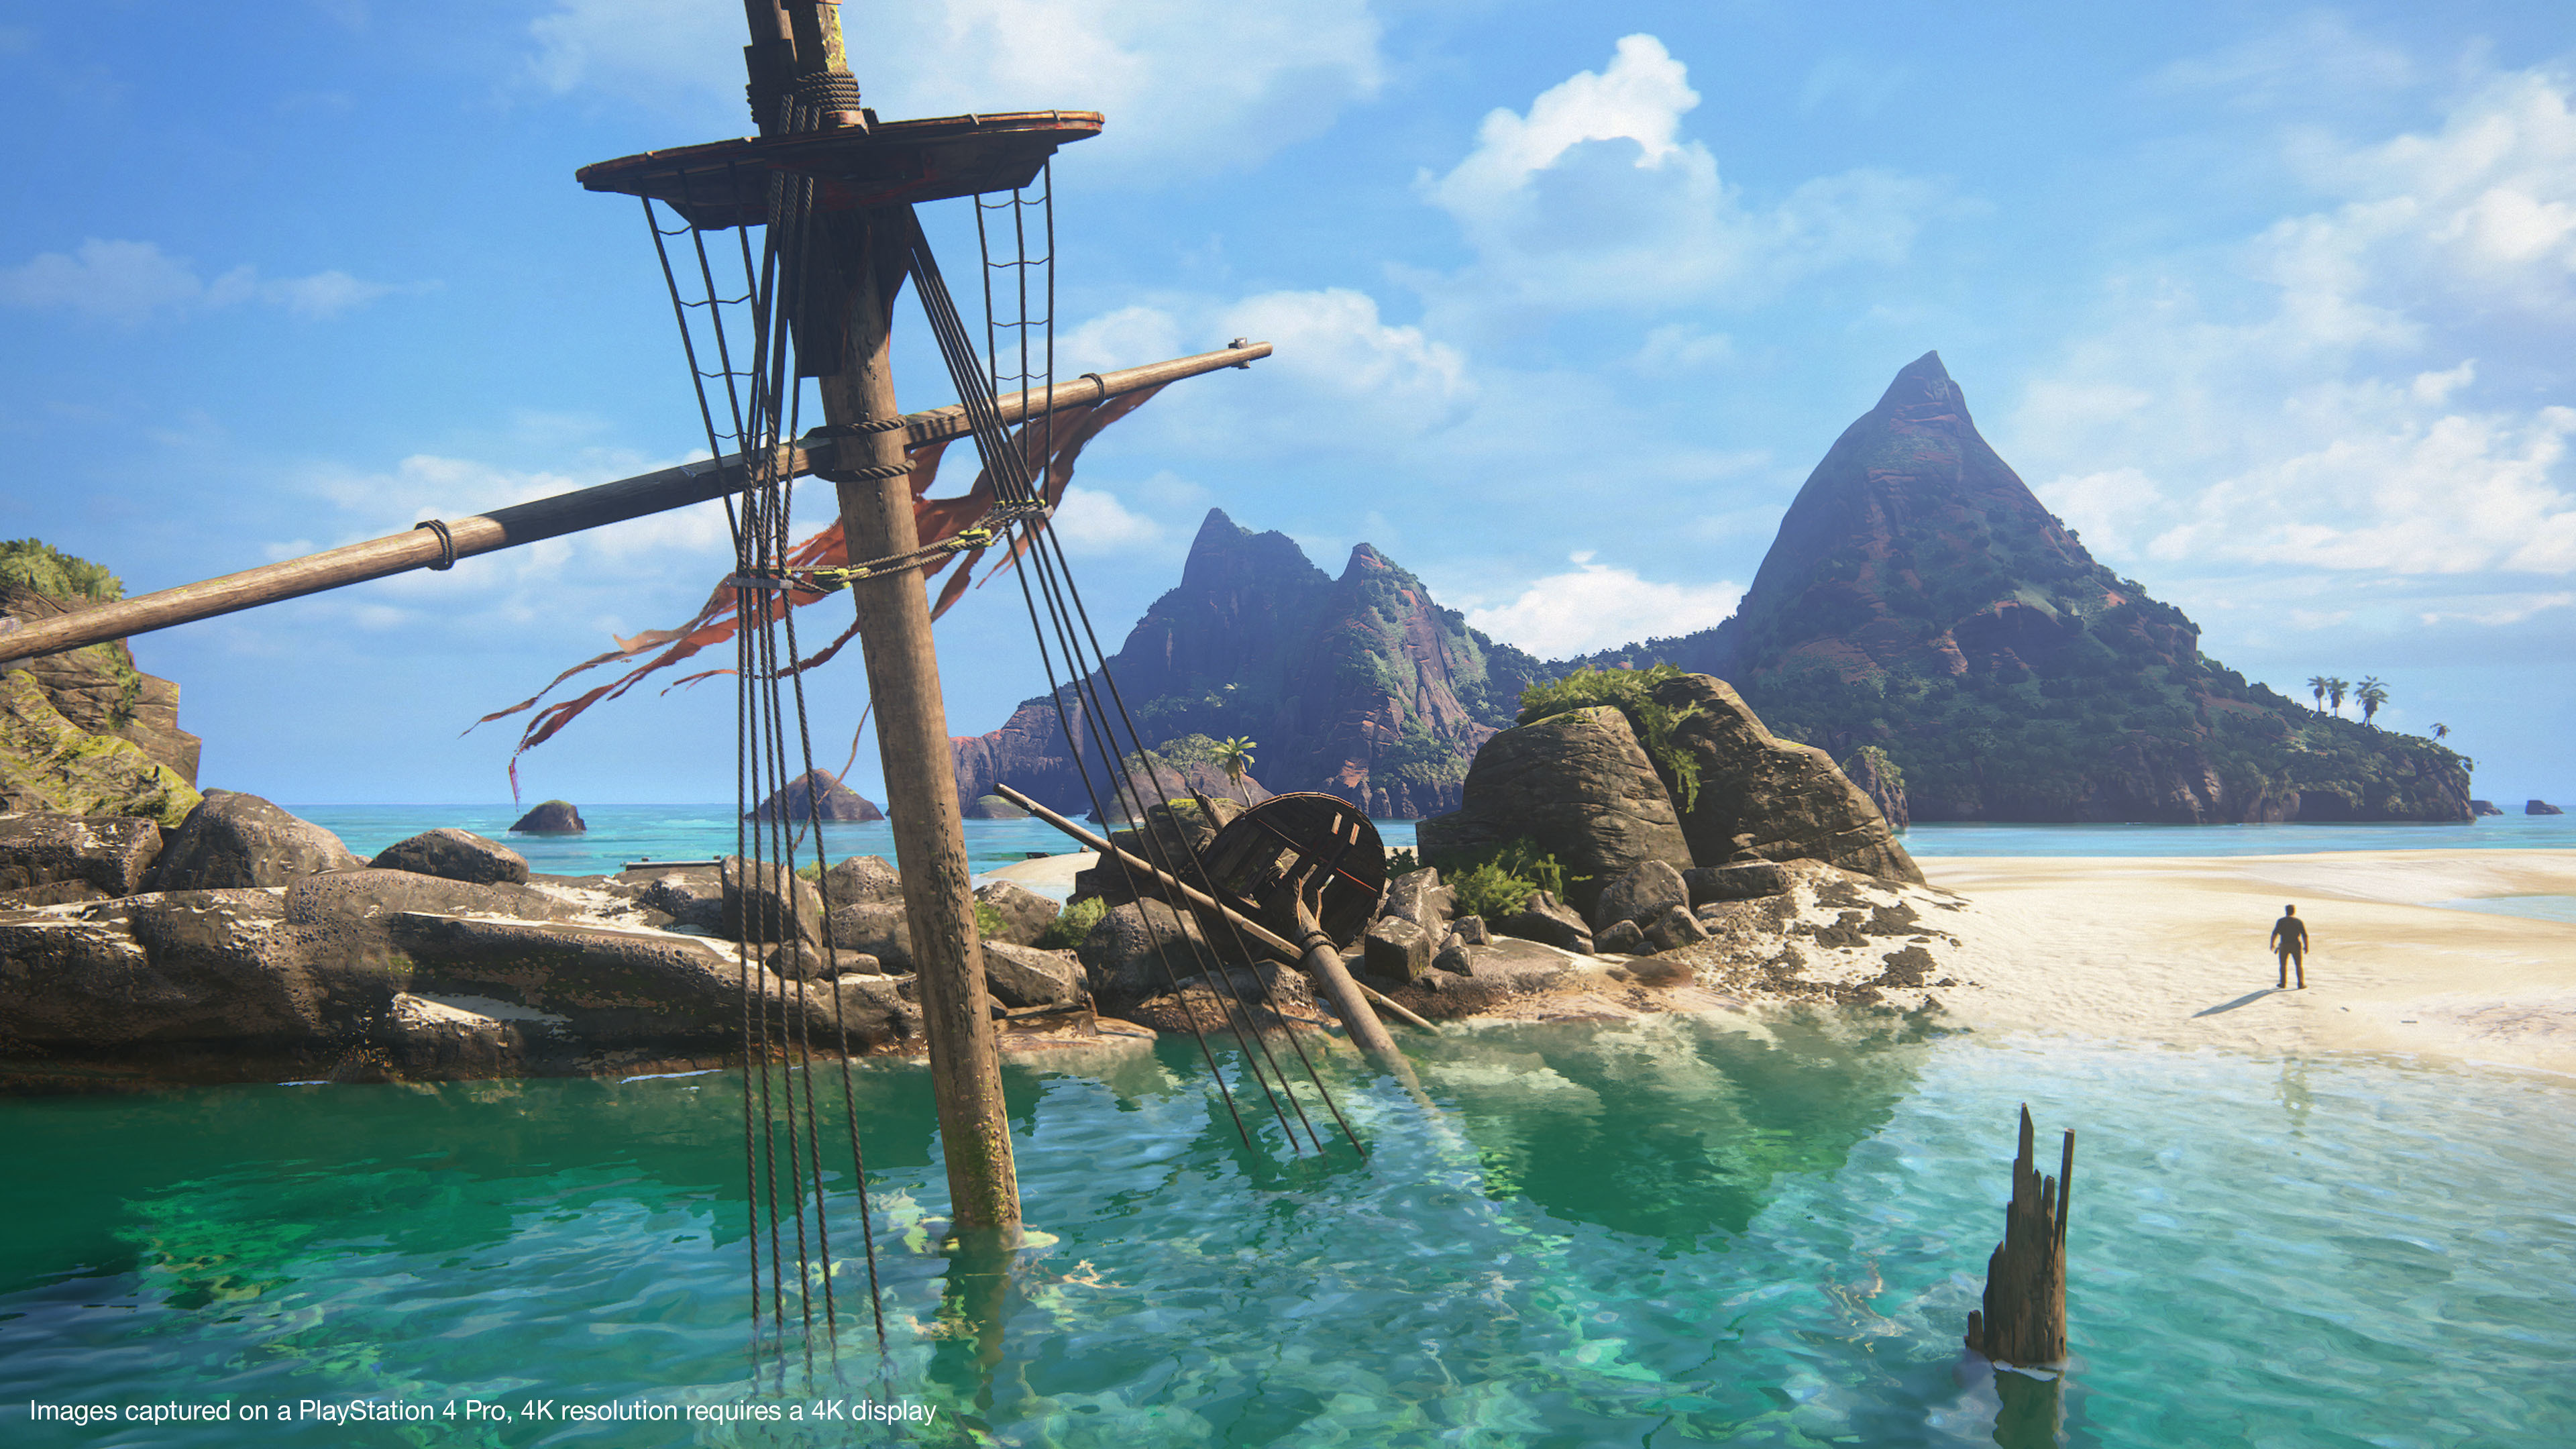 Uncharted 4 and The Last of Us Remastered on PS4 Pro